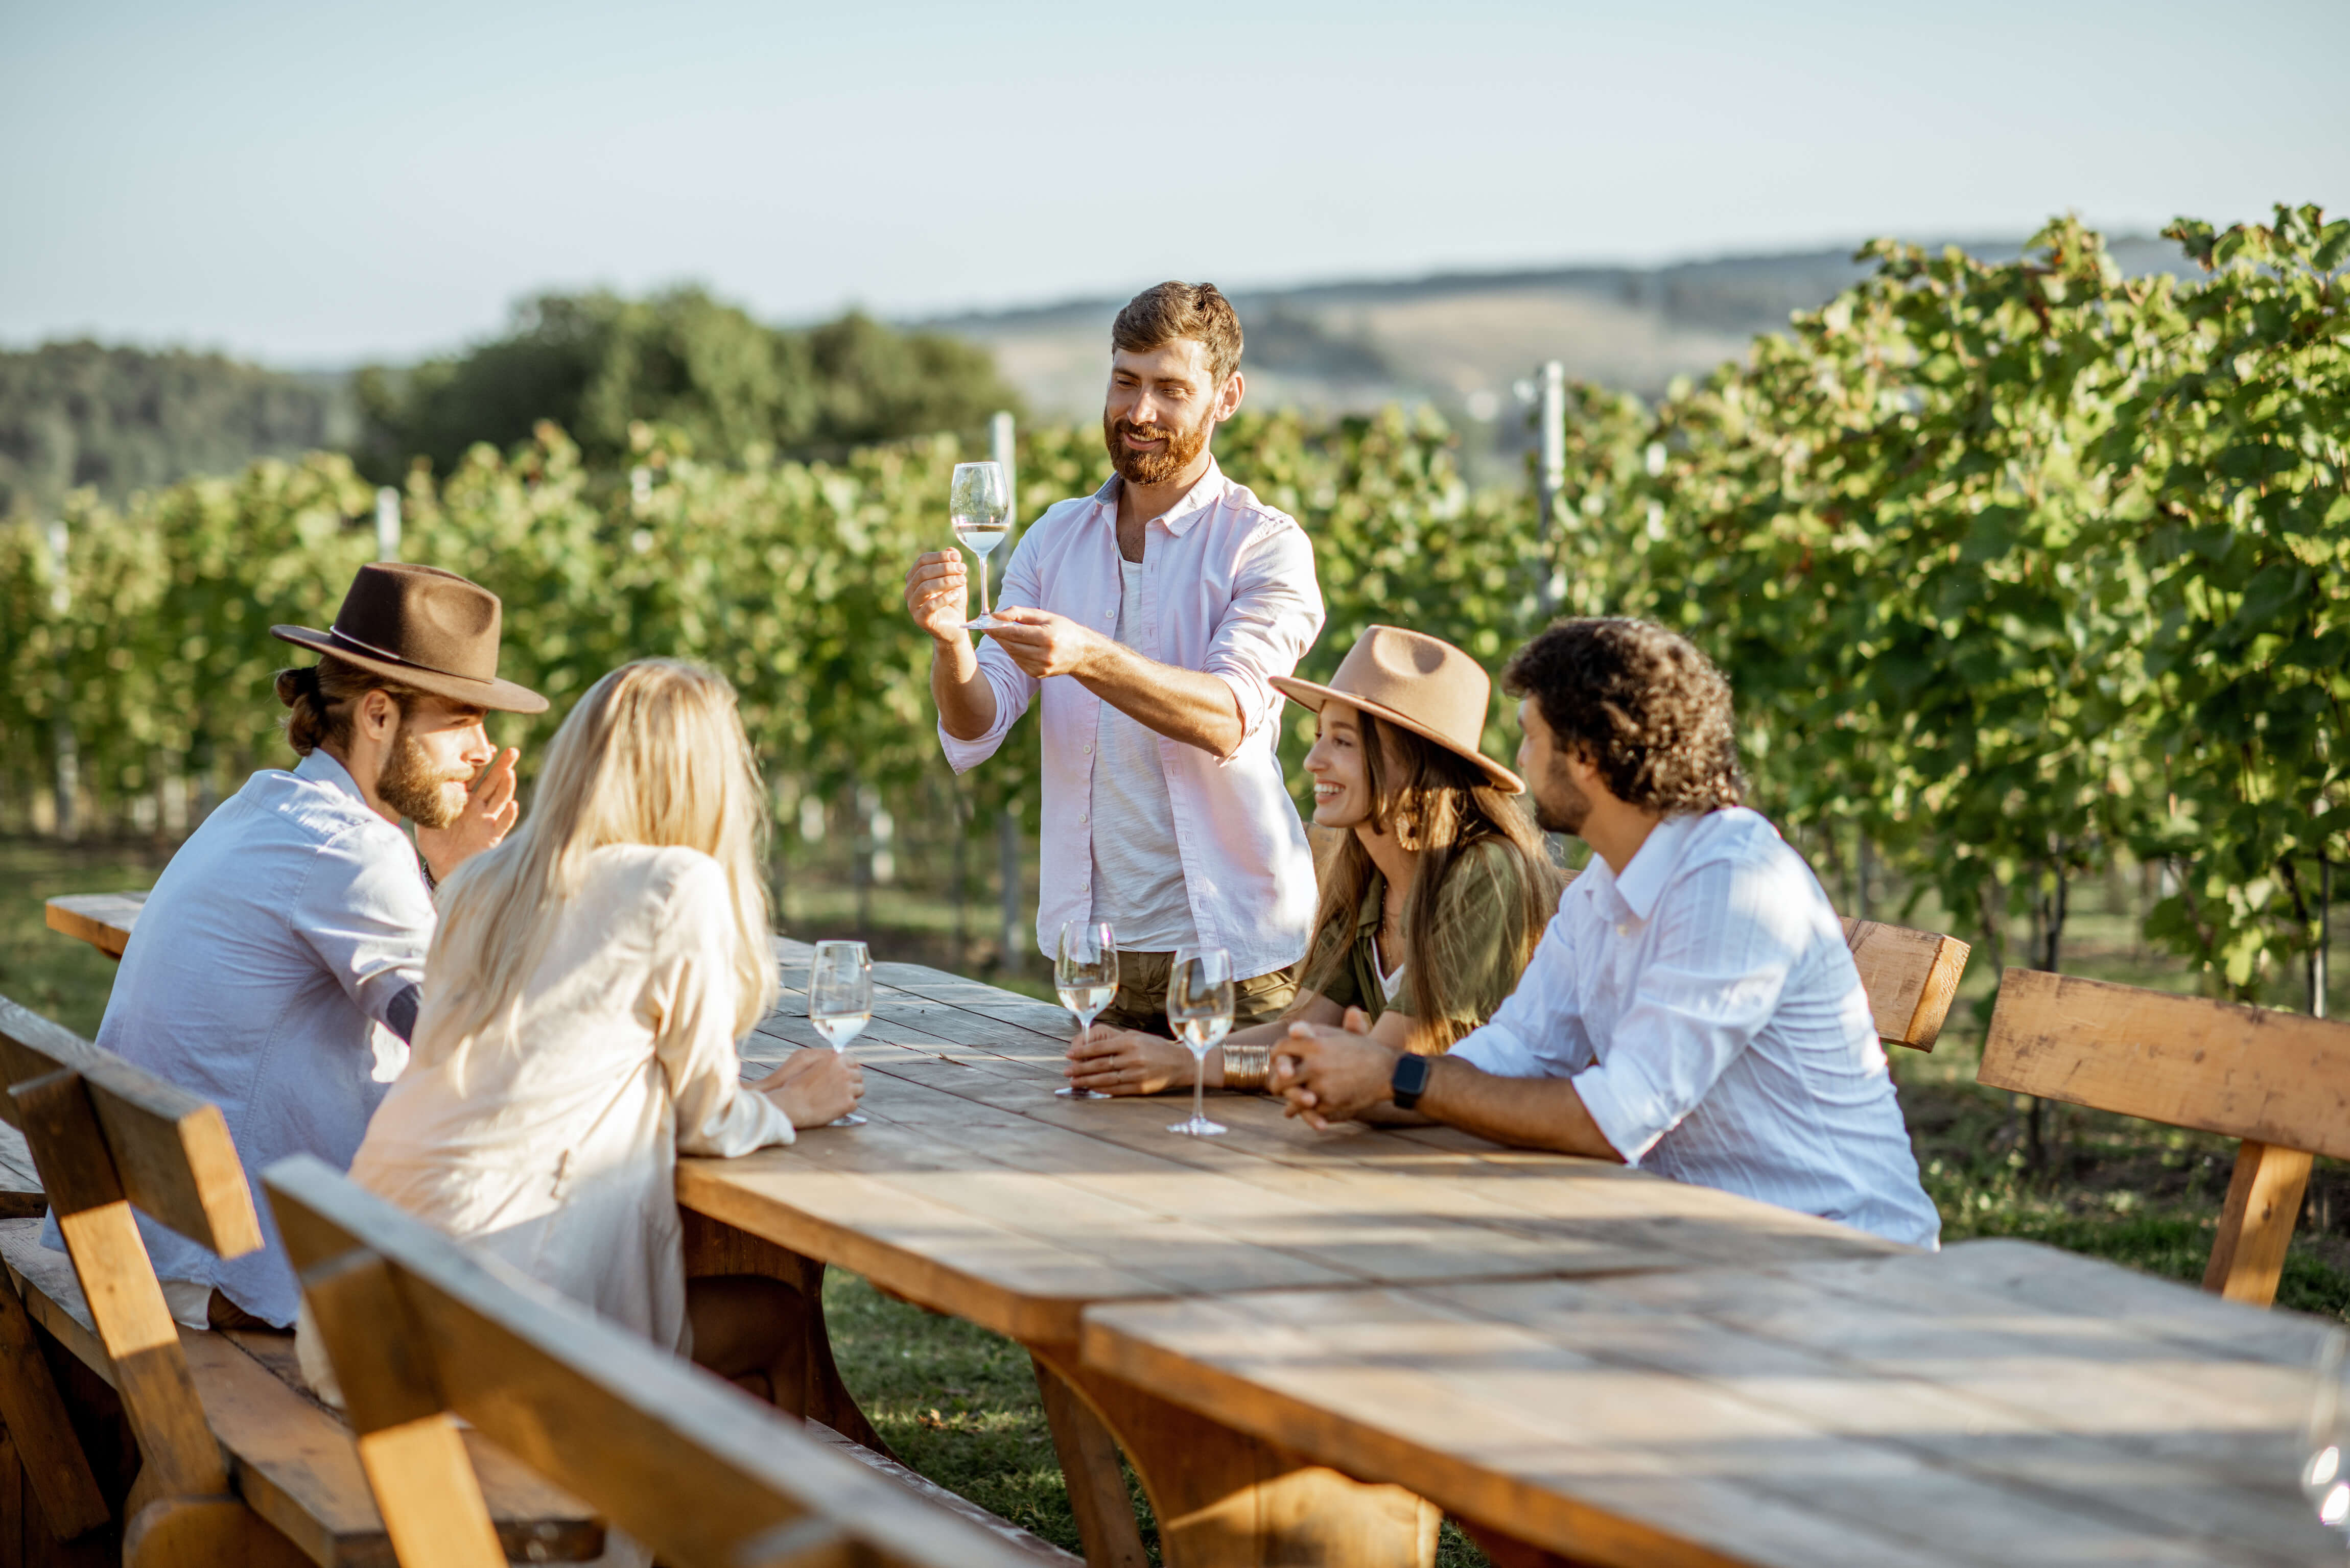 New Zealand locals enjoying wine in the sunshine